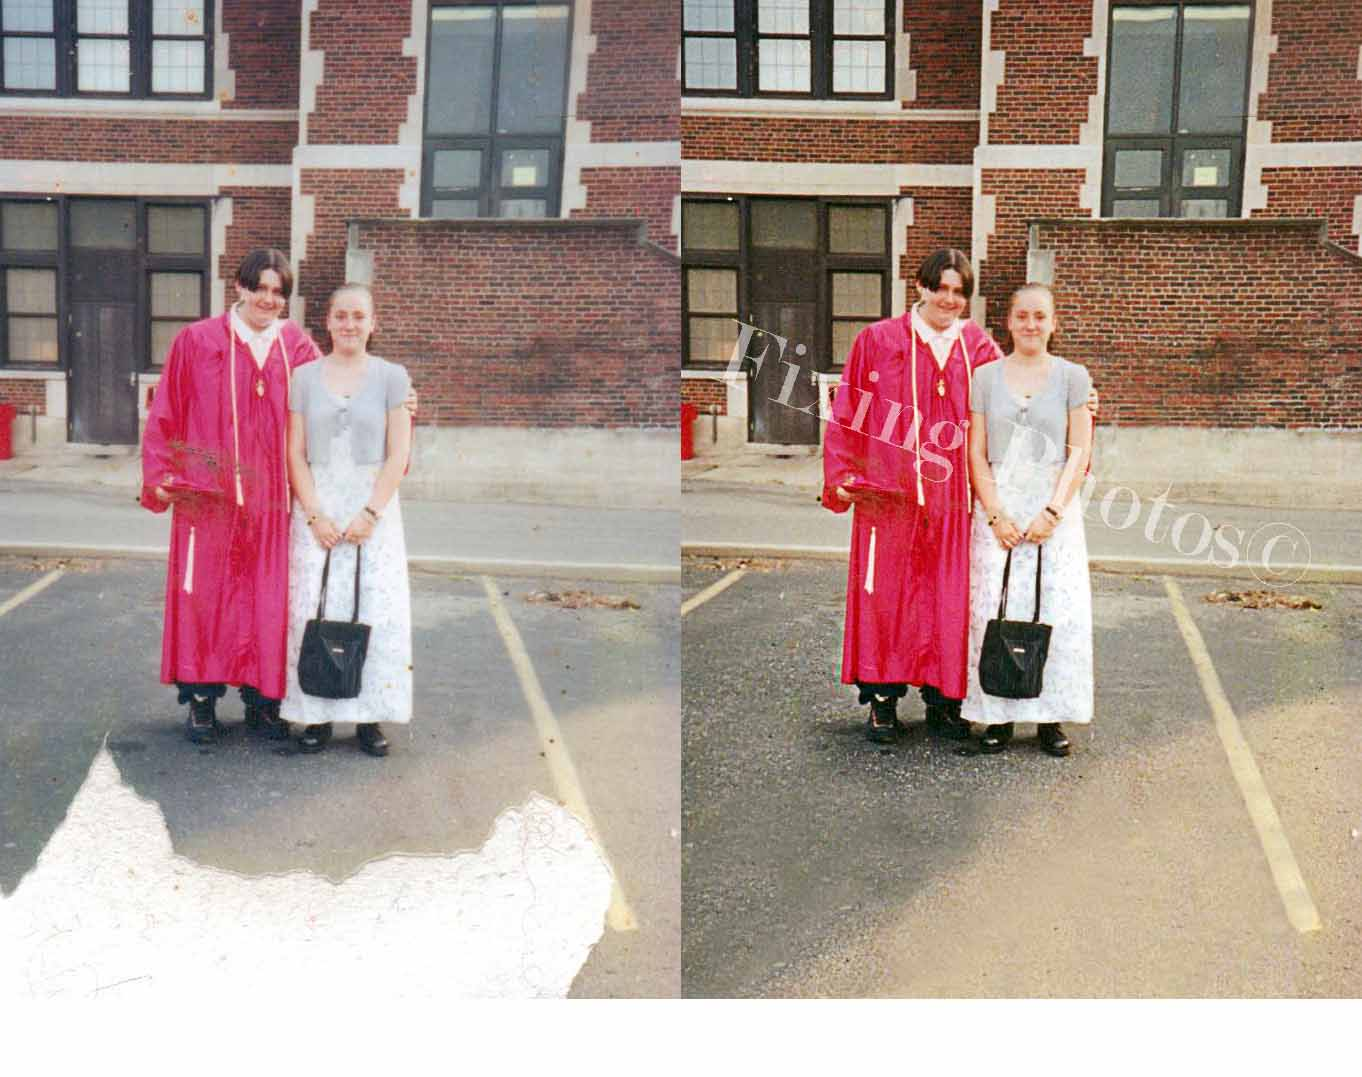 Photo Restoration & Photo Repair Samples